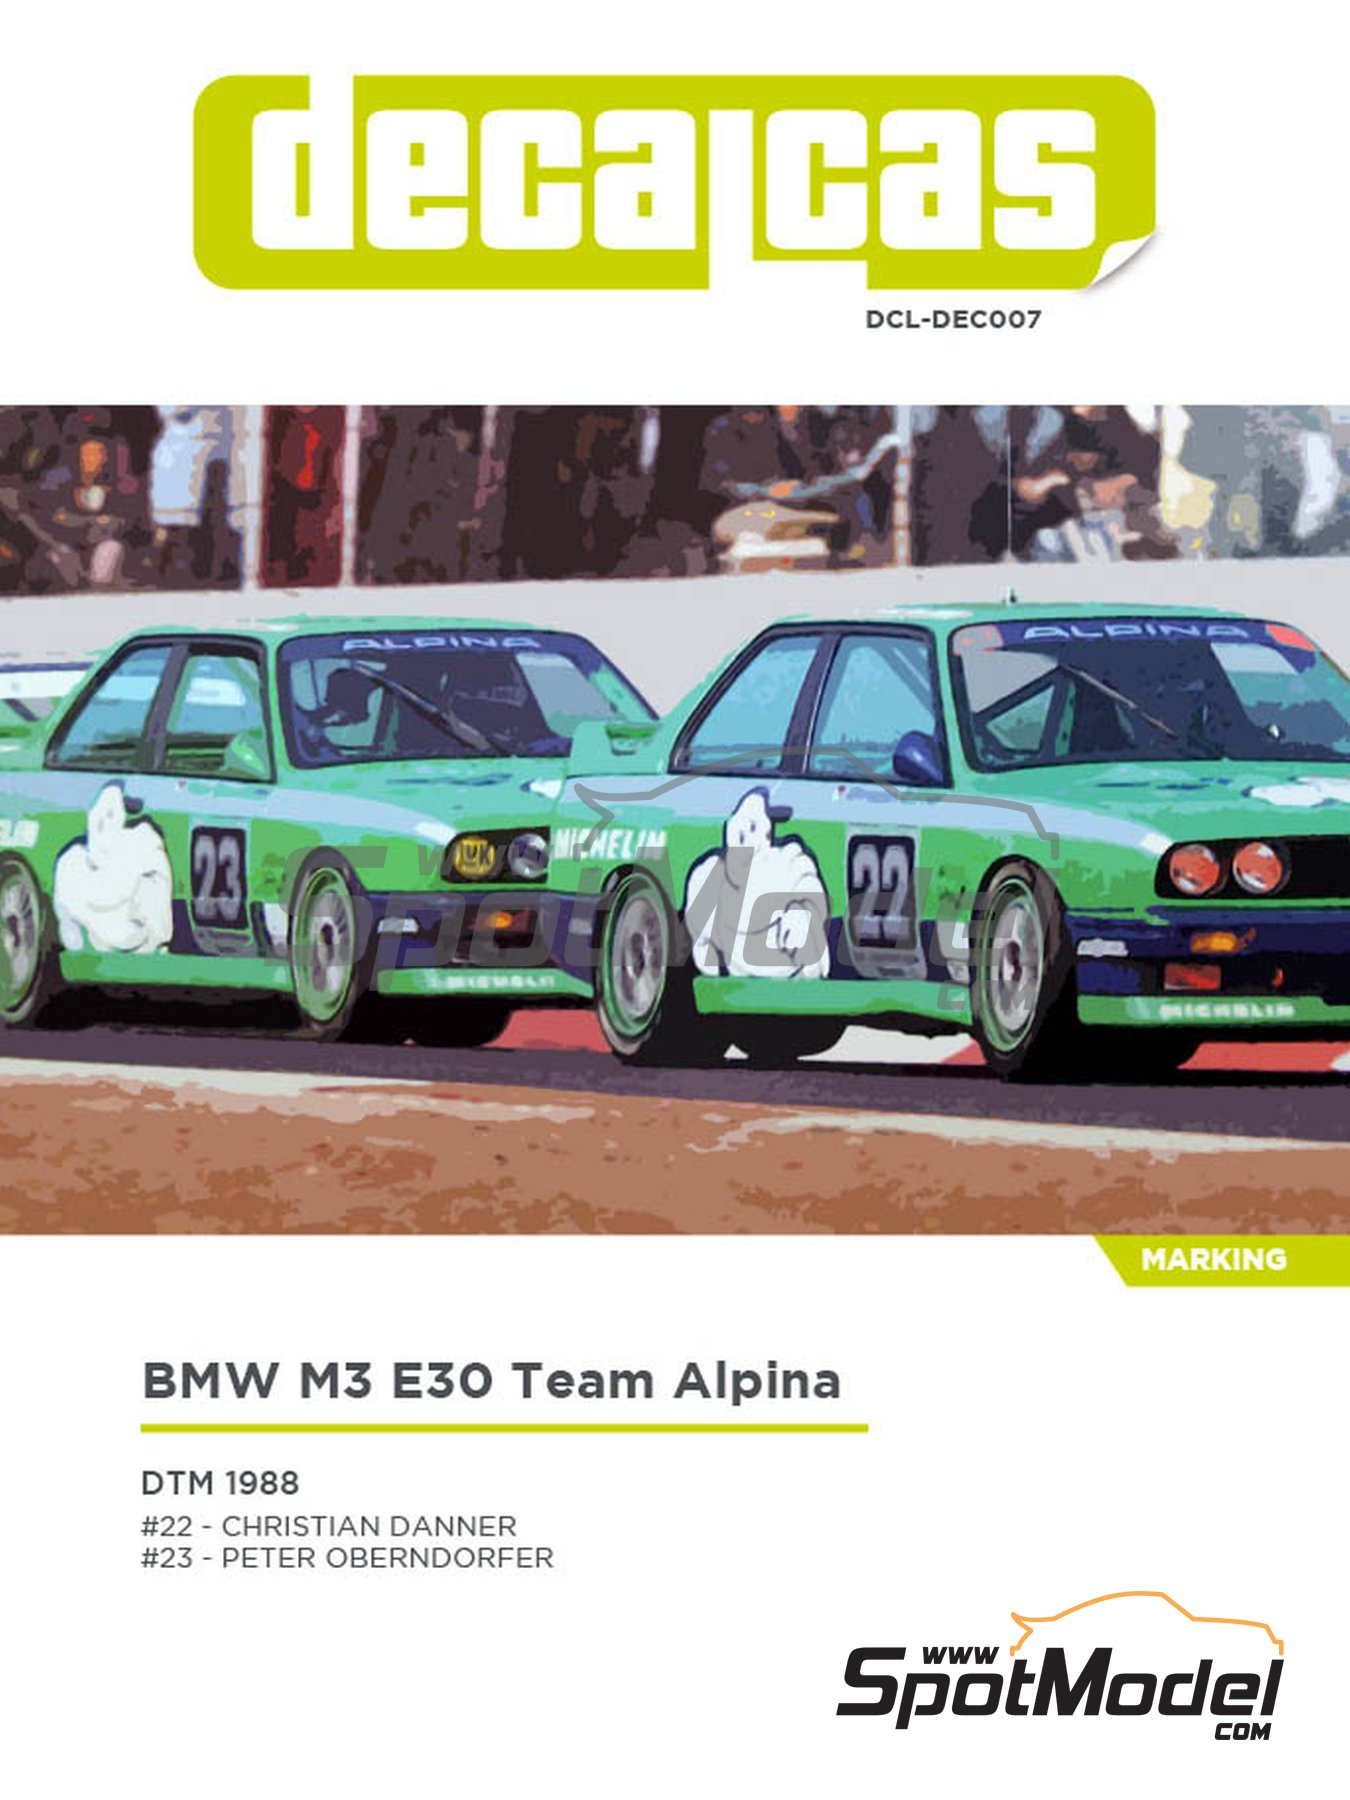 BMW M3 E30 Team Alpina - DTM 1988 | Marking / livery in 1/24 scale manufactured by Decalcas (ref. DCL-DEC007) image